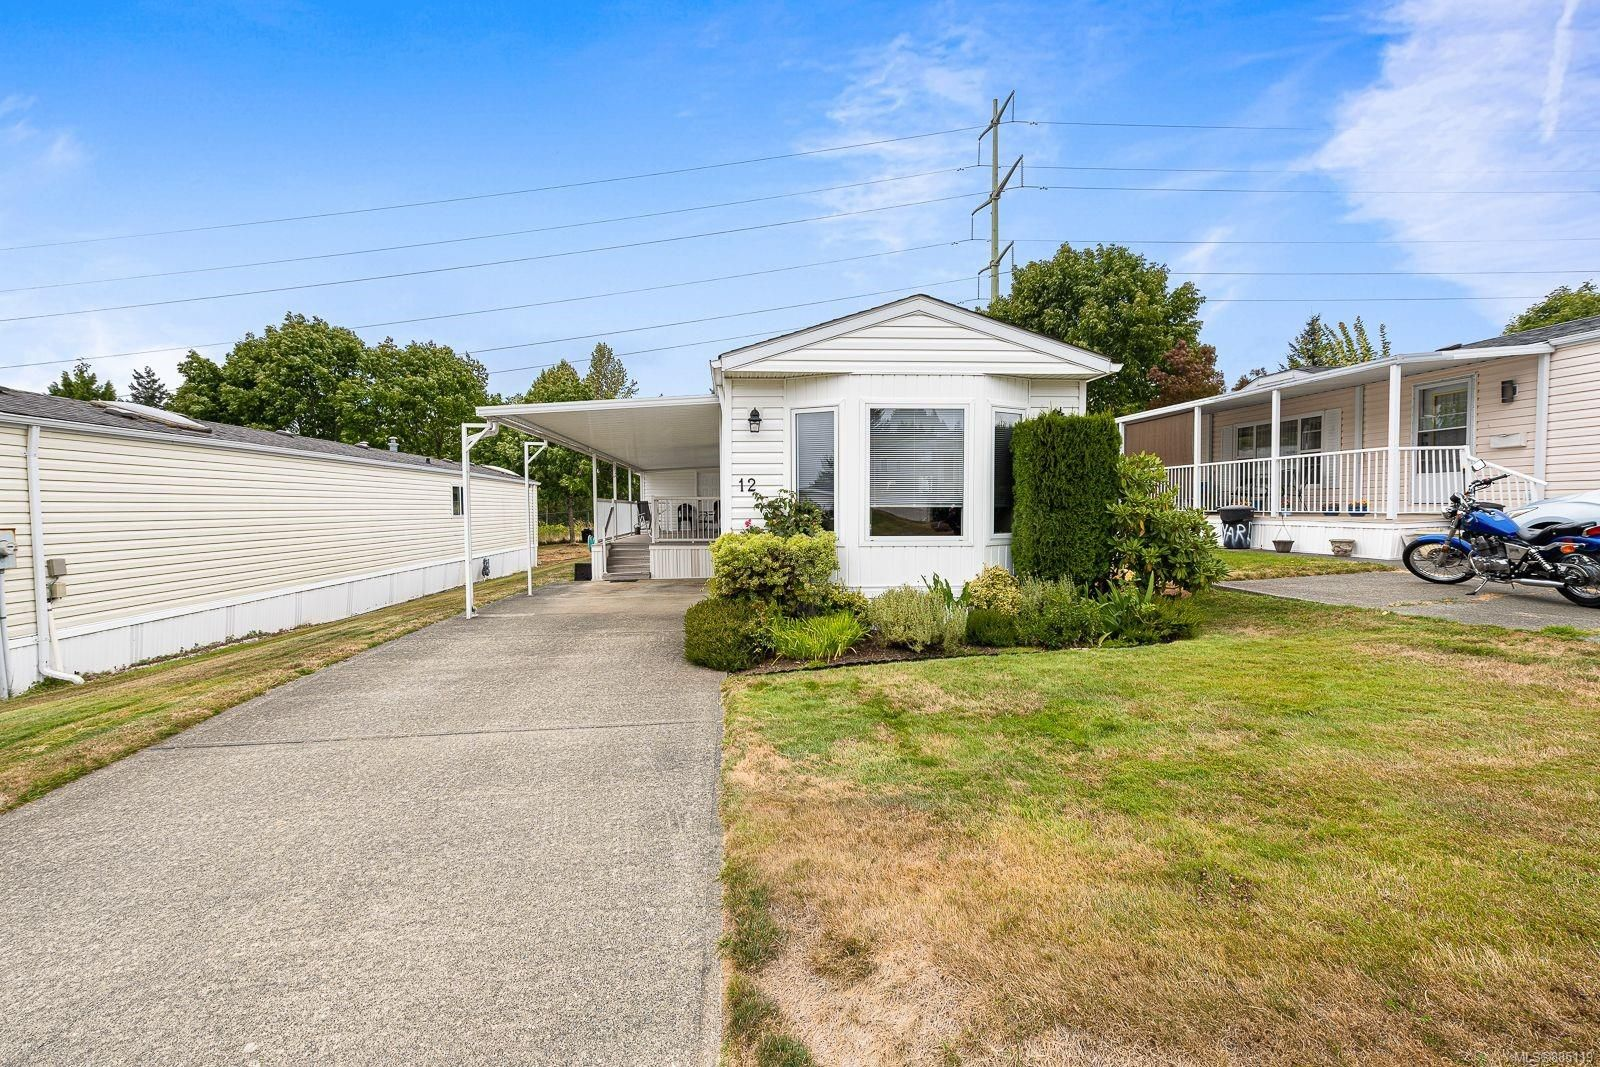 Main Photo: 12 4714 Muir Rd in : CV Courtenay City Manufactured Home for sale (Comox Valley)  : MLS®# 885119